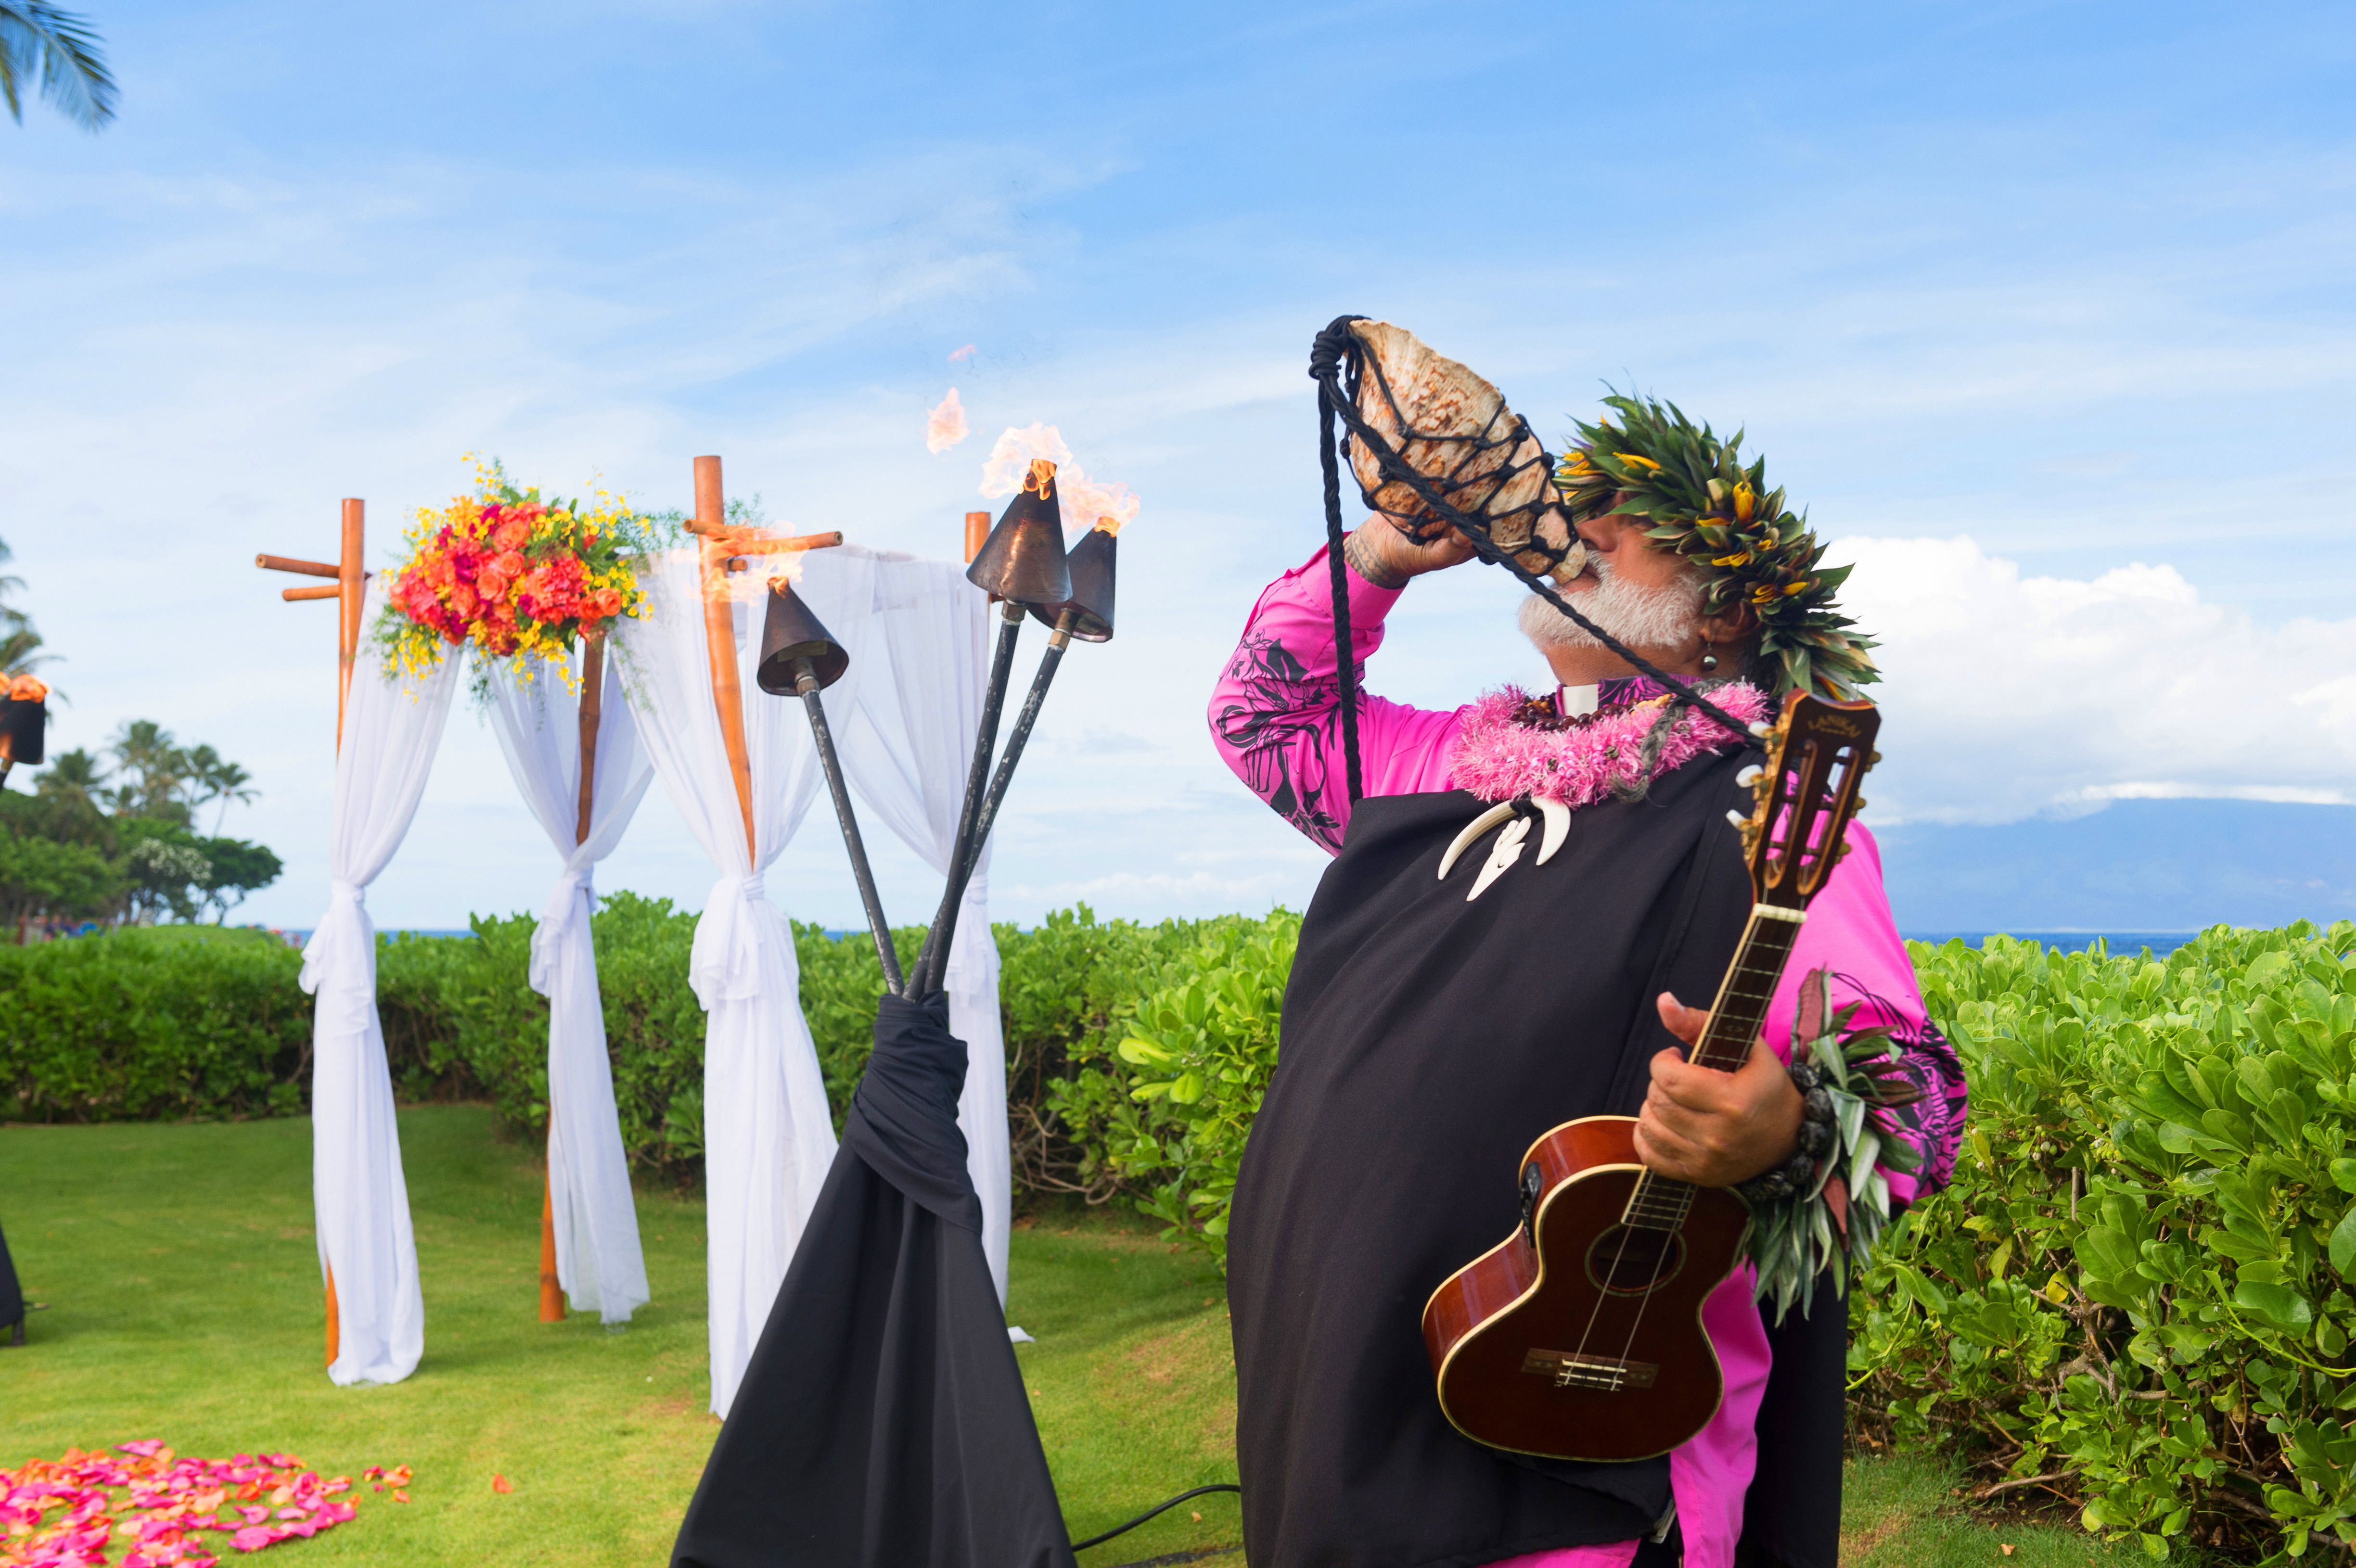 #TravelTip Take advantage of the beautiful scenery & romantic atmosphere to RENEW YOUR VOWS! http://www.kbhmaui.com/weddings/packages/maui-wedding-packages